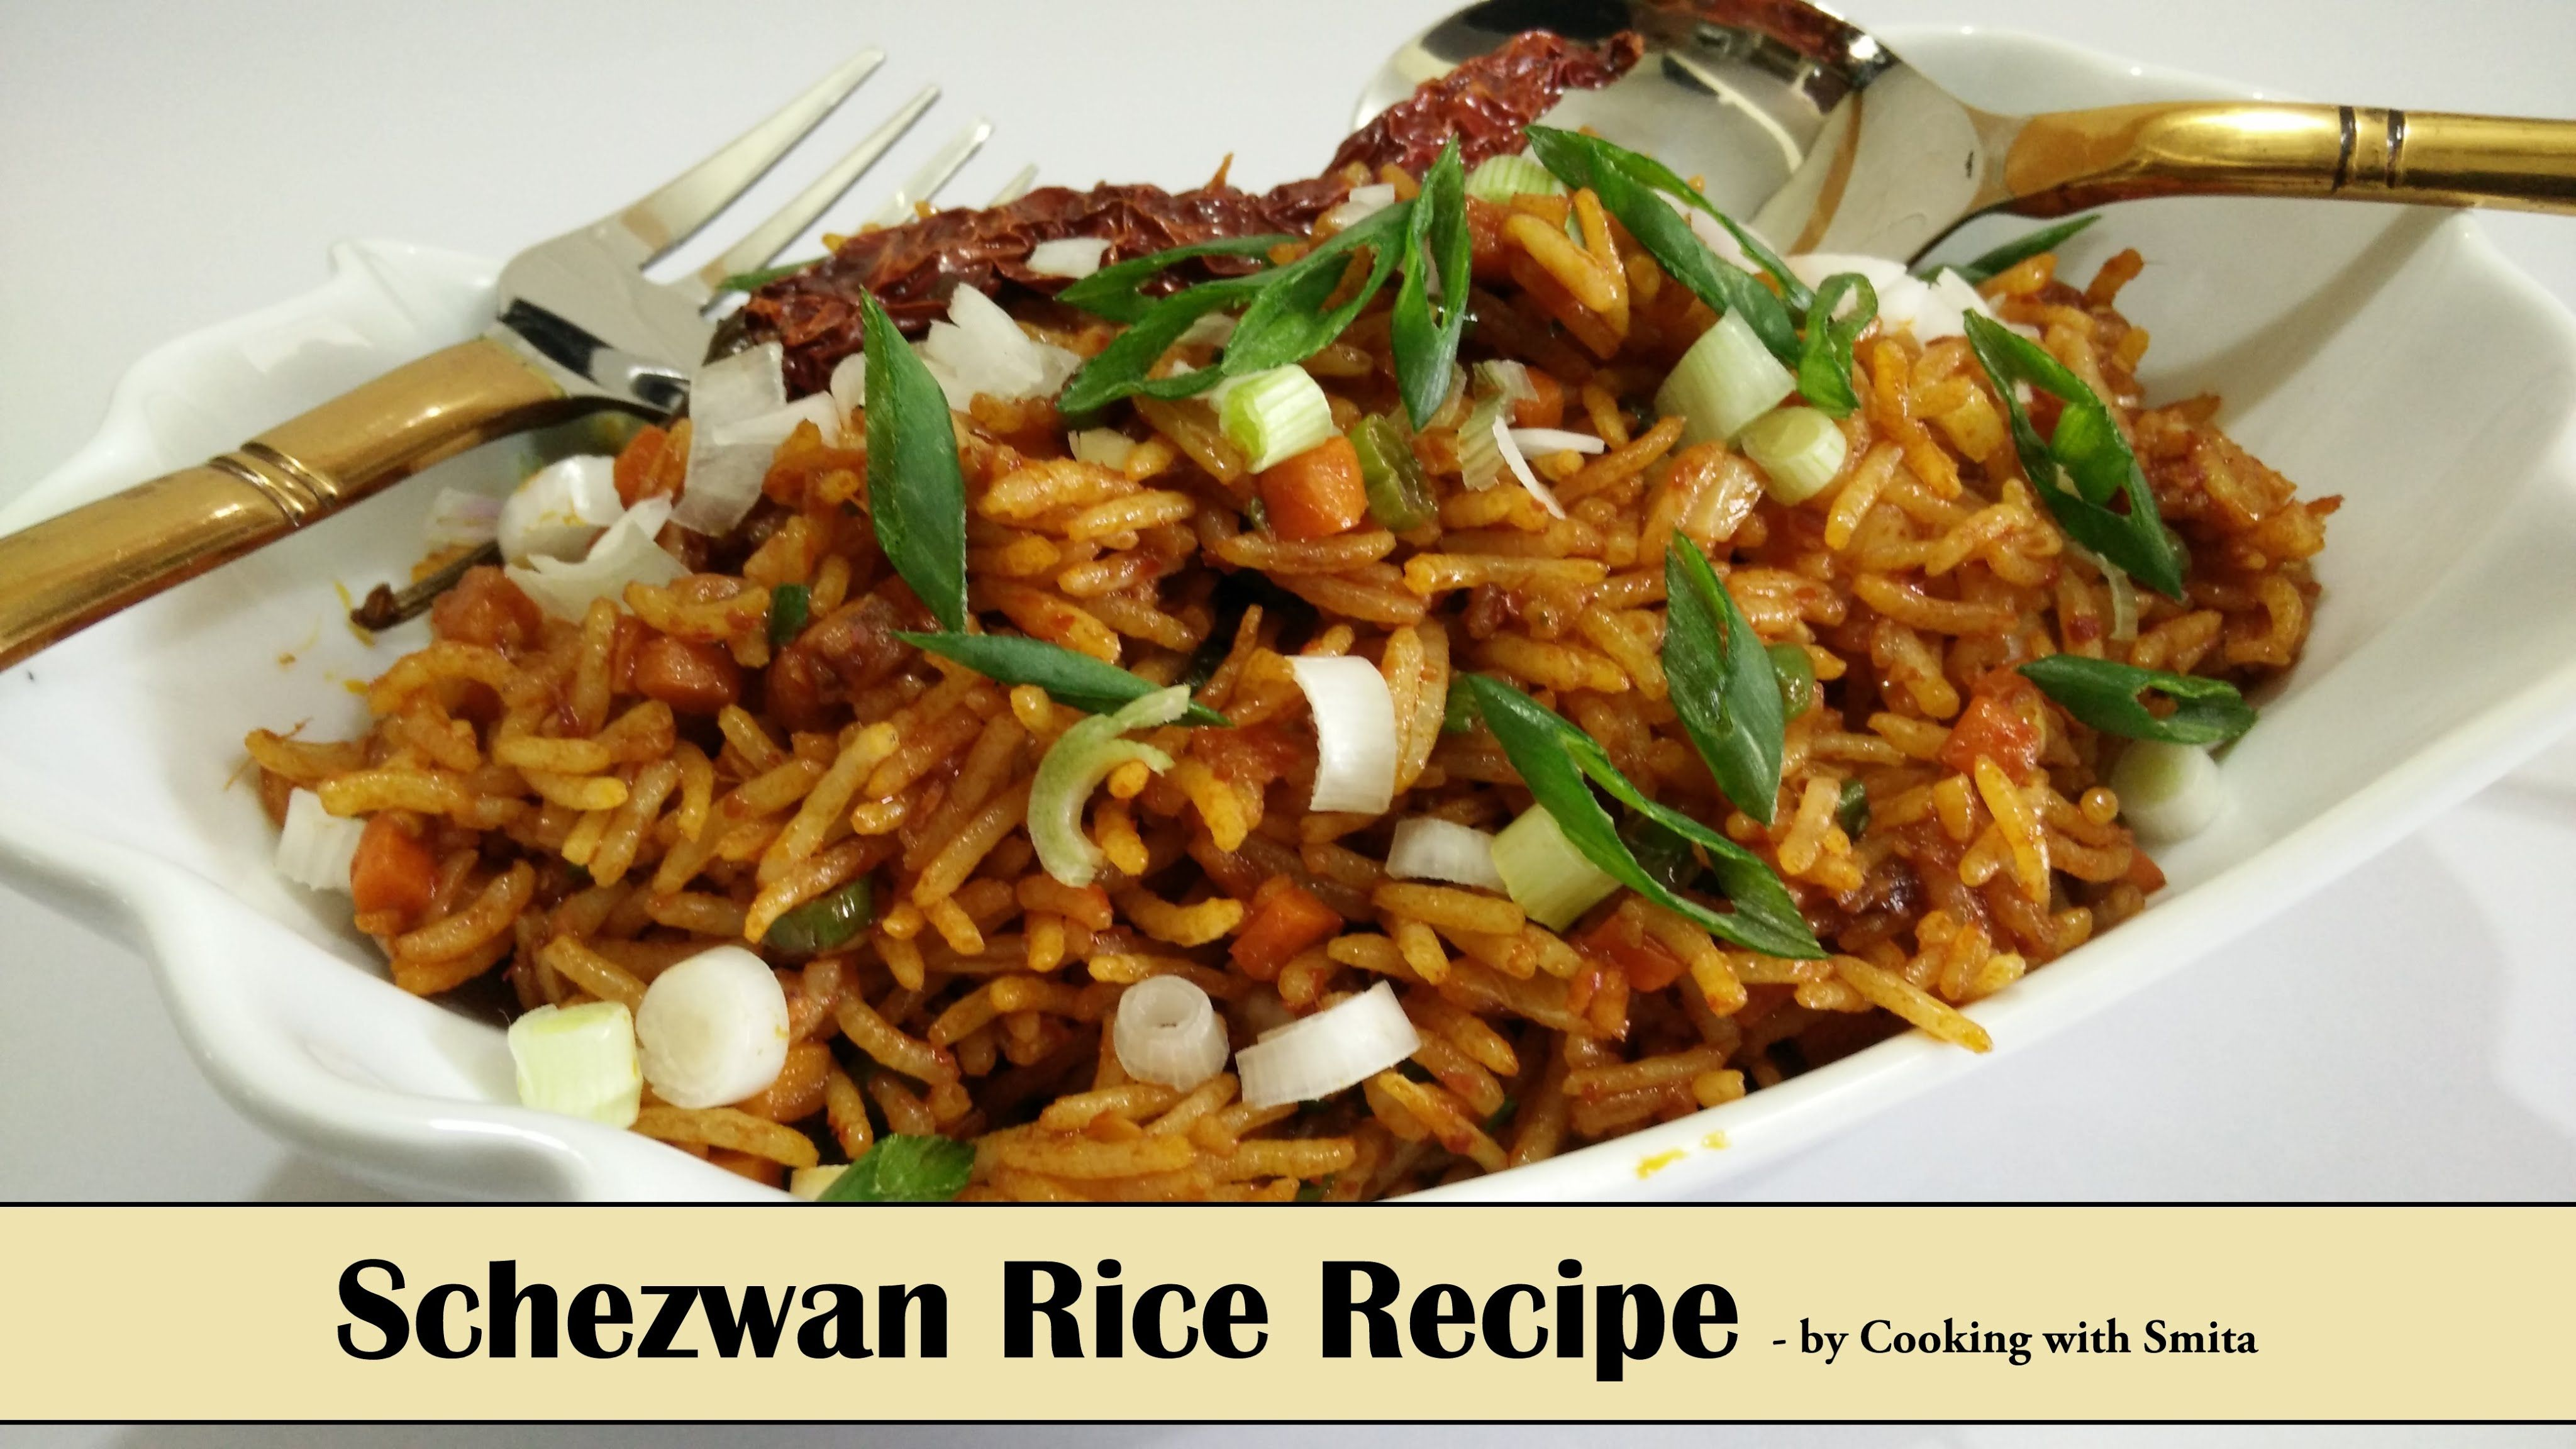 Schezwan rice recipe in hindi by cooking with smita veg schezwan schezwan rice recipe in hindi by cooking with smita veg schezwan fried veg schezwan fried rice is a indo chinese recipe with a mouth watering blend of forumfinder Choice Image